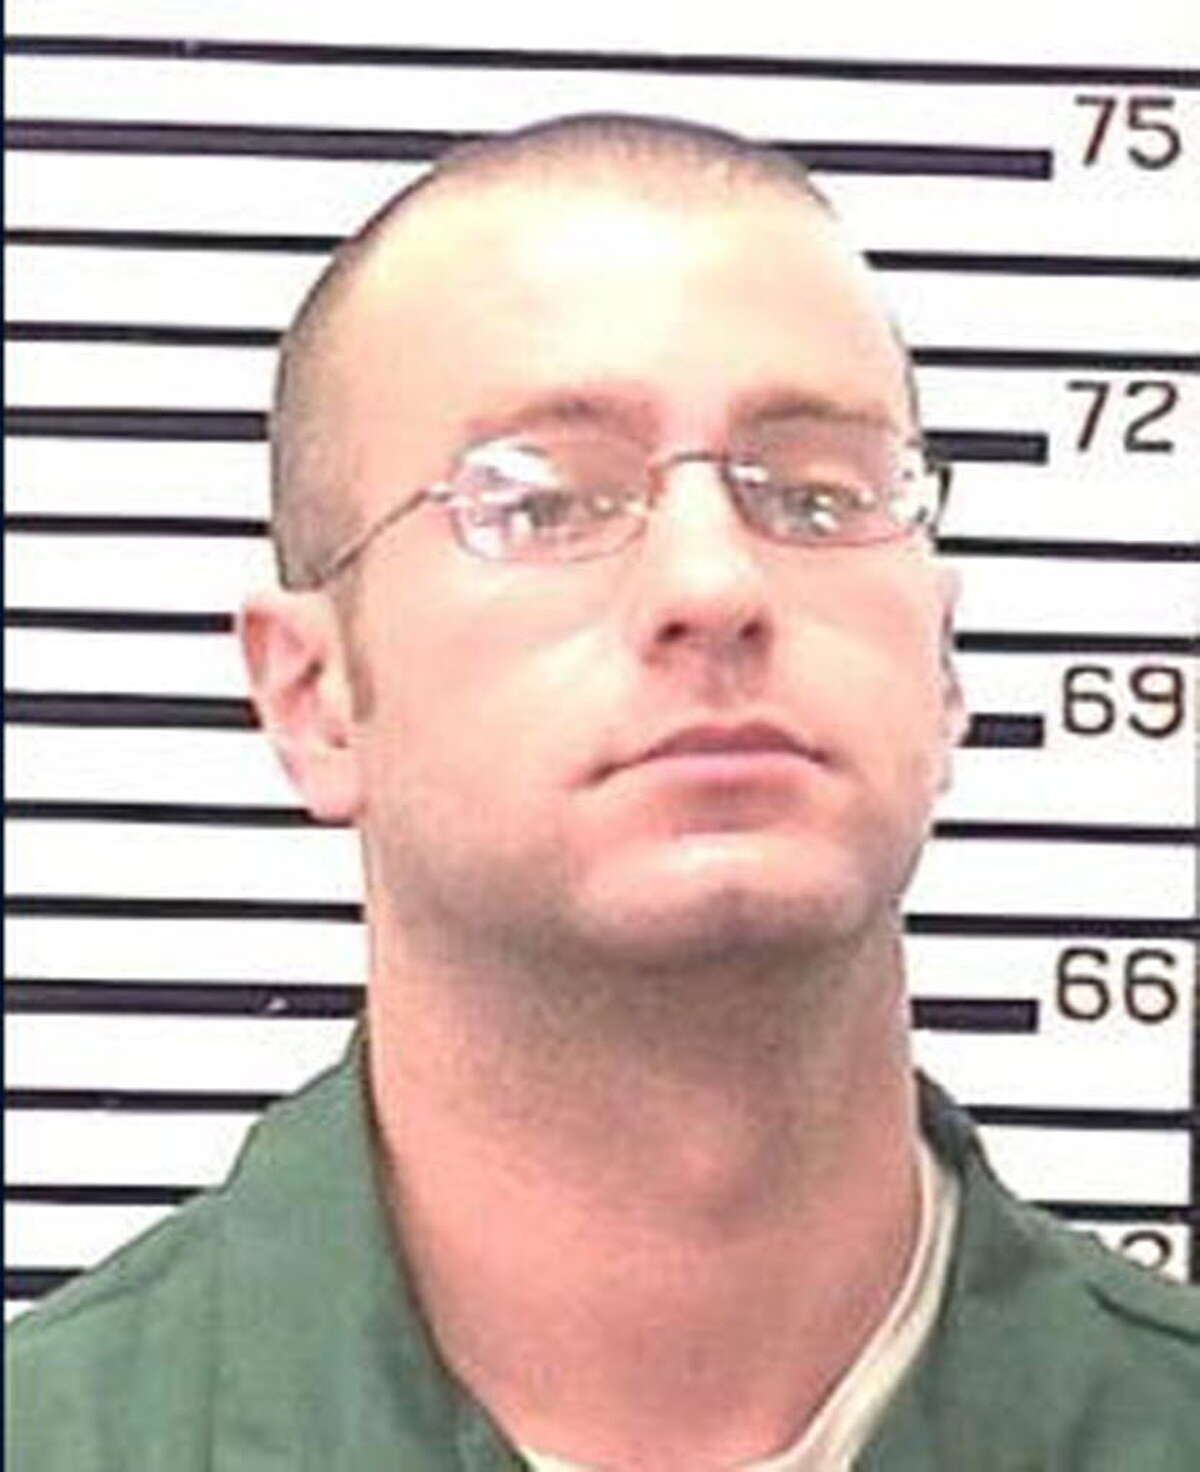 Christopher Porco, 28, pictured here in a prison mugshot taken at state prison in November 2009.